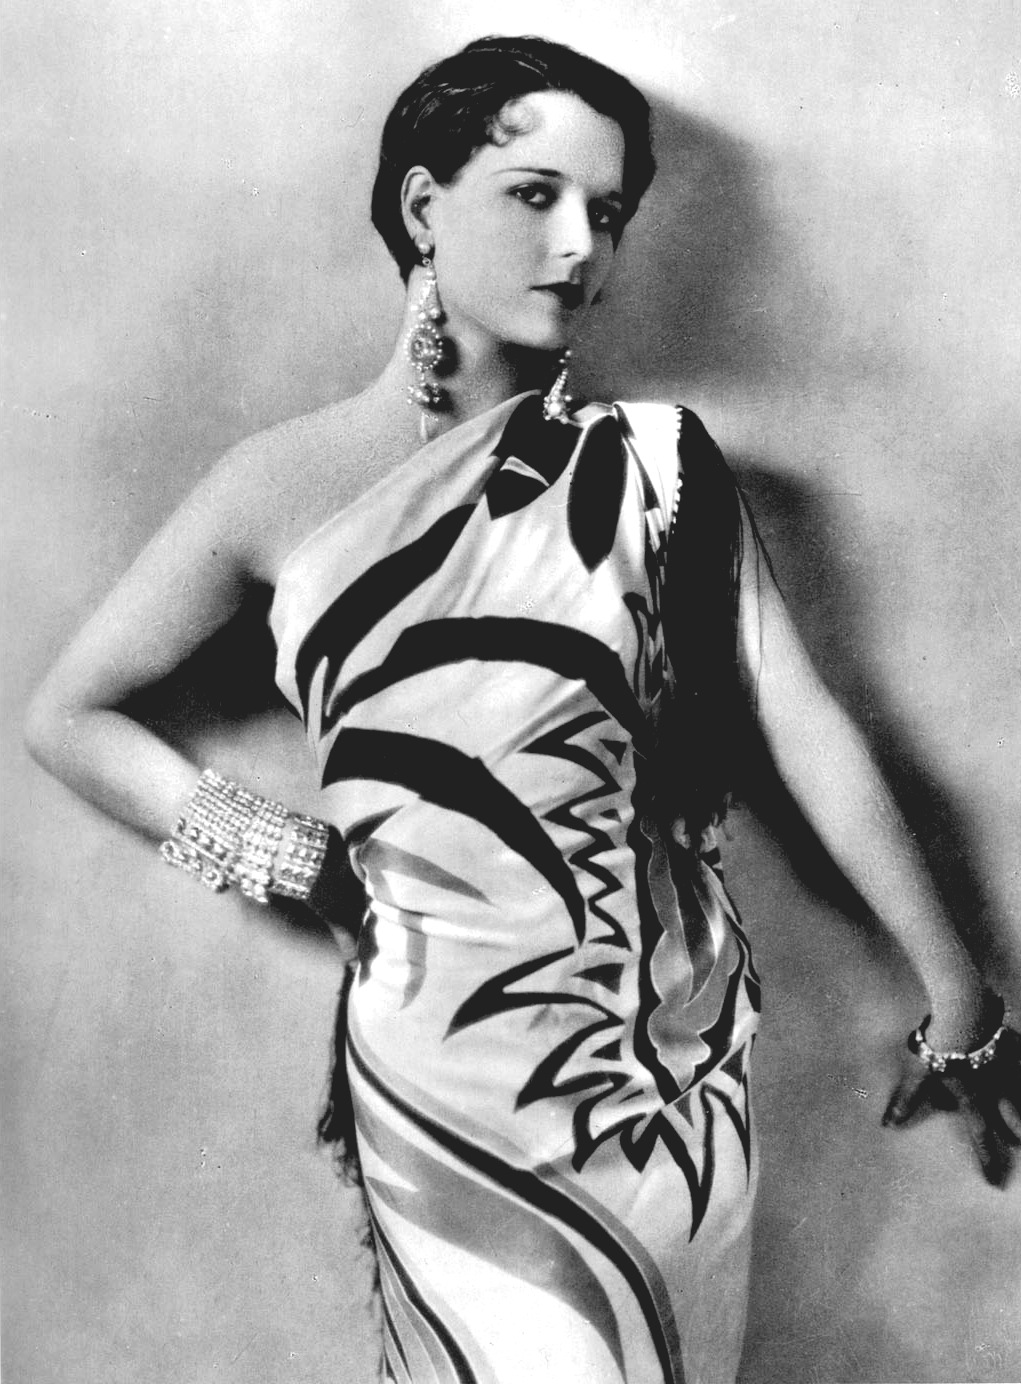 Zedisred The Original It Girl Of The 1920s The Allure